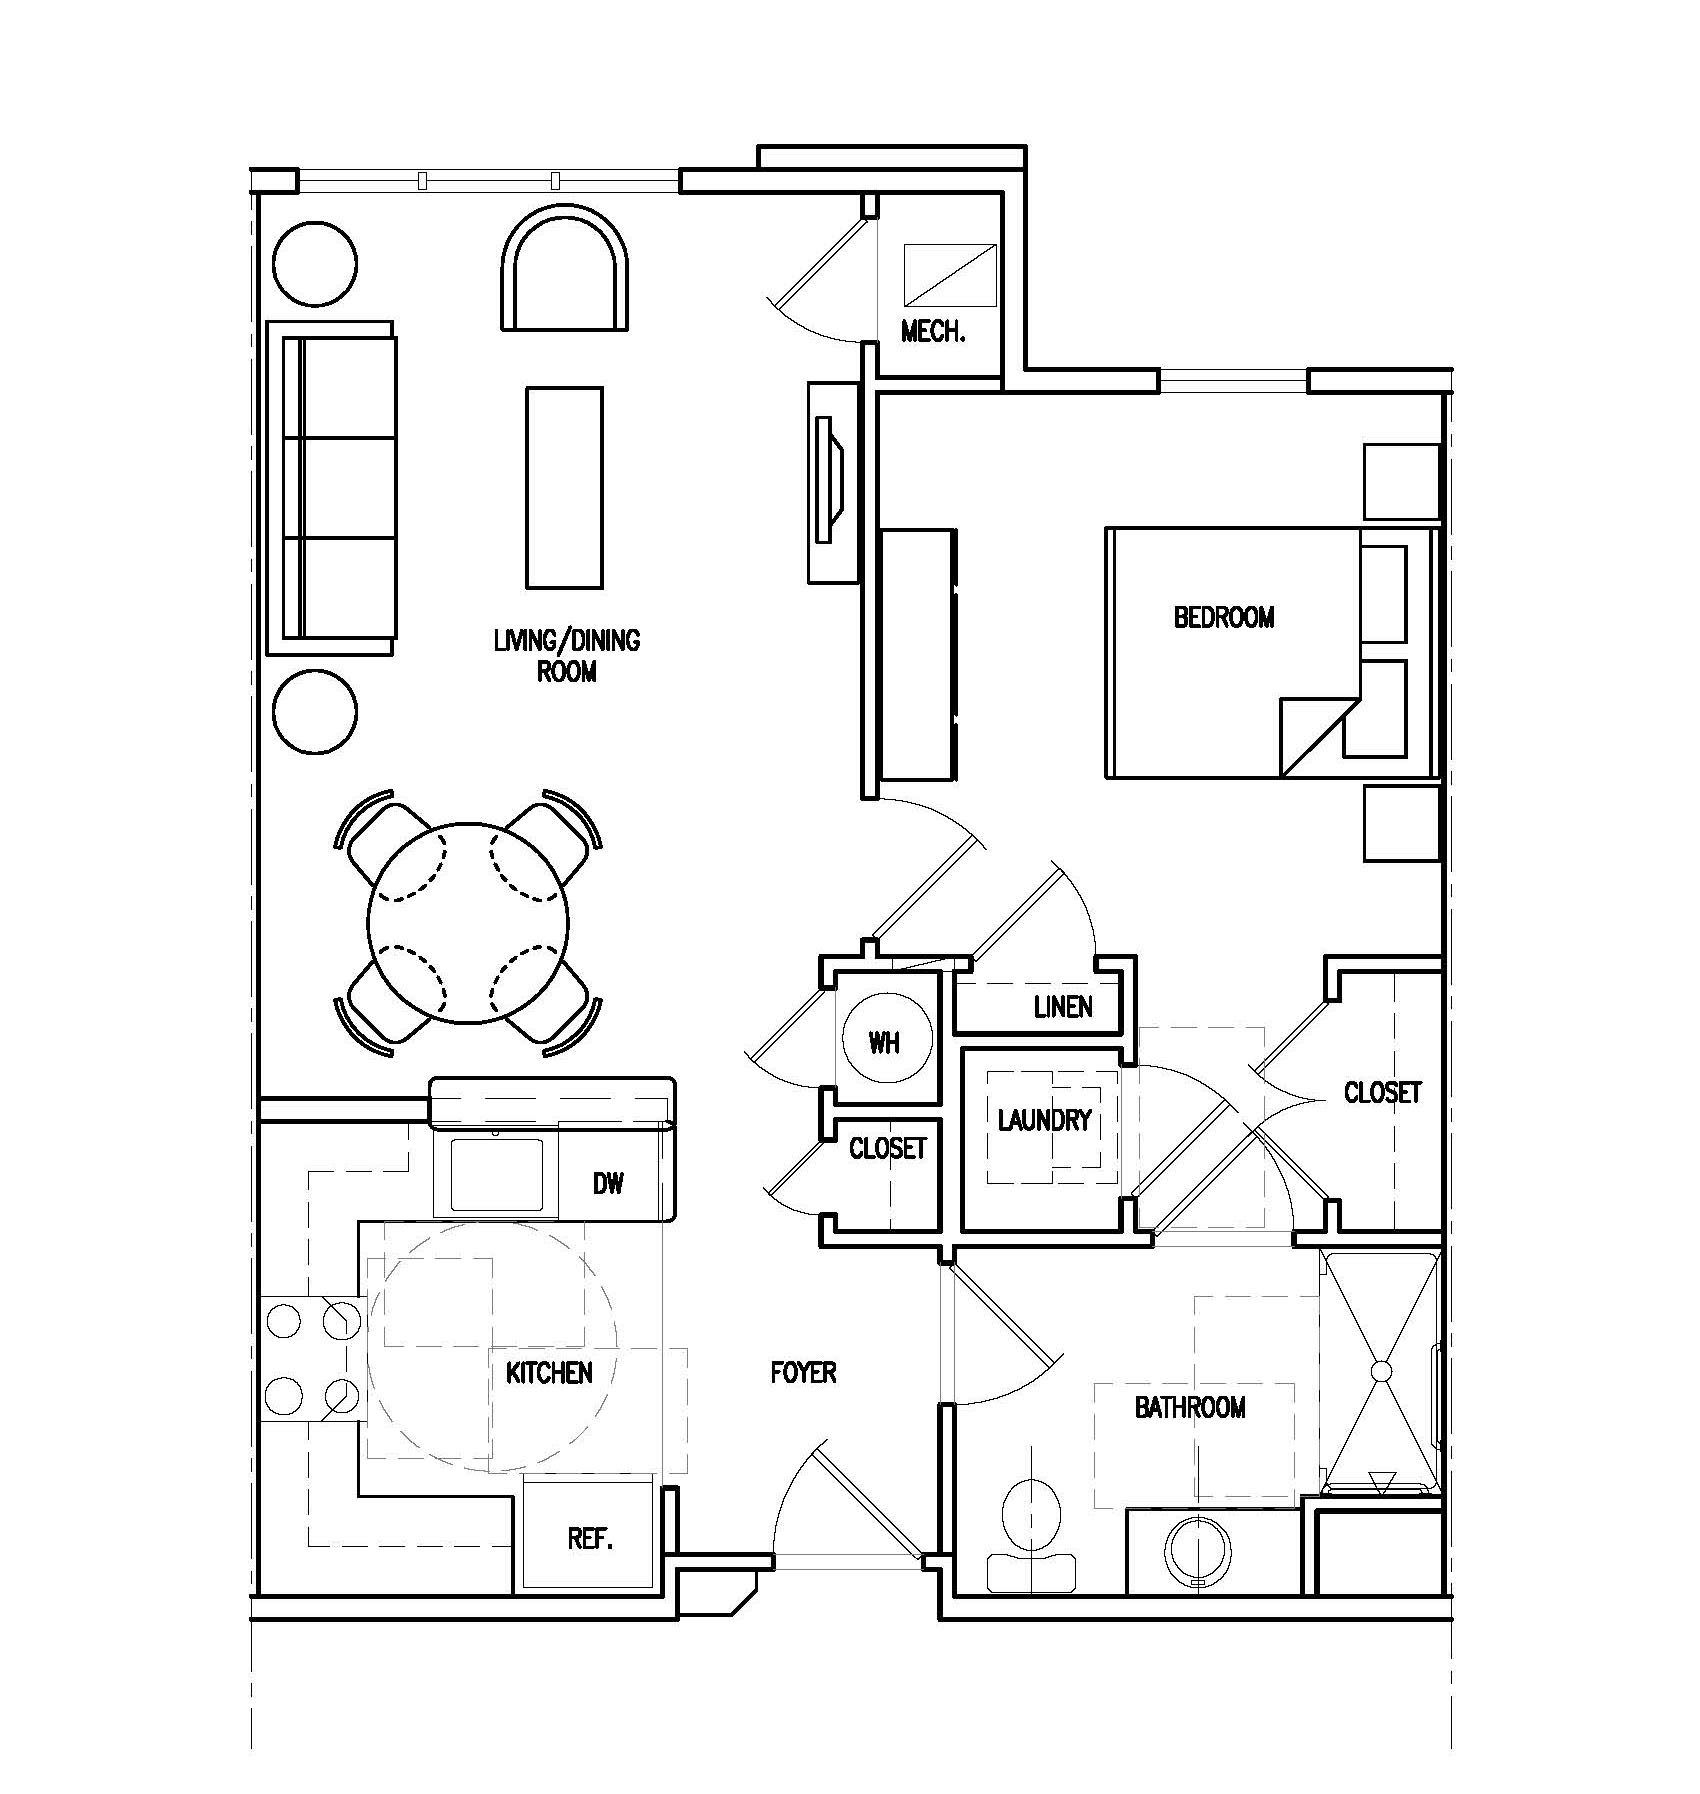 internet cafe floor plan design www imgkid com the internet cafe floor plan floor plan for a cyber cafe